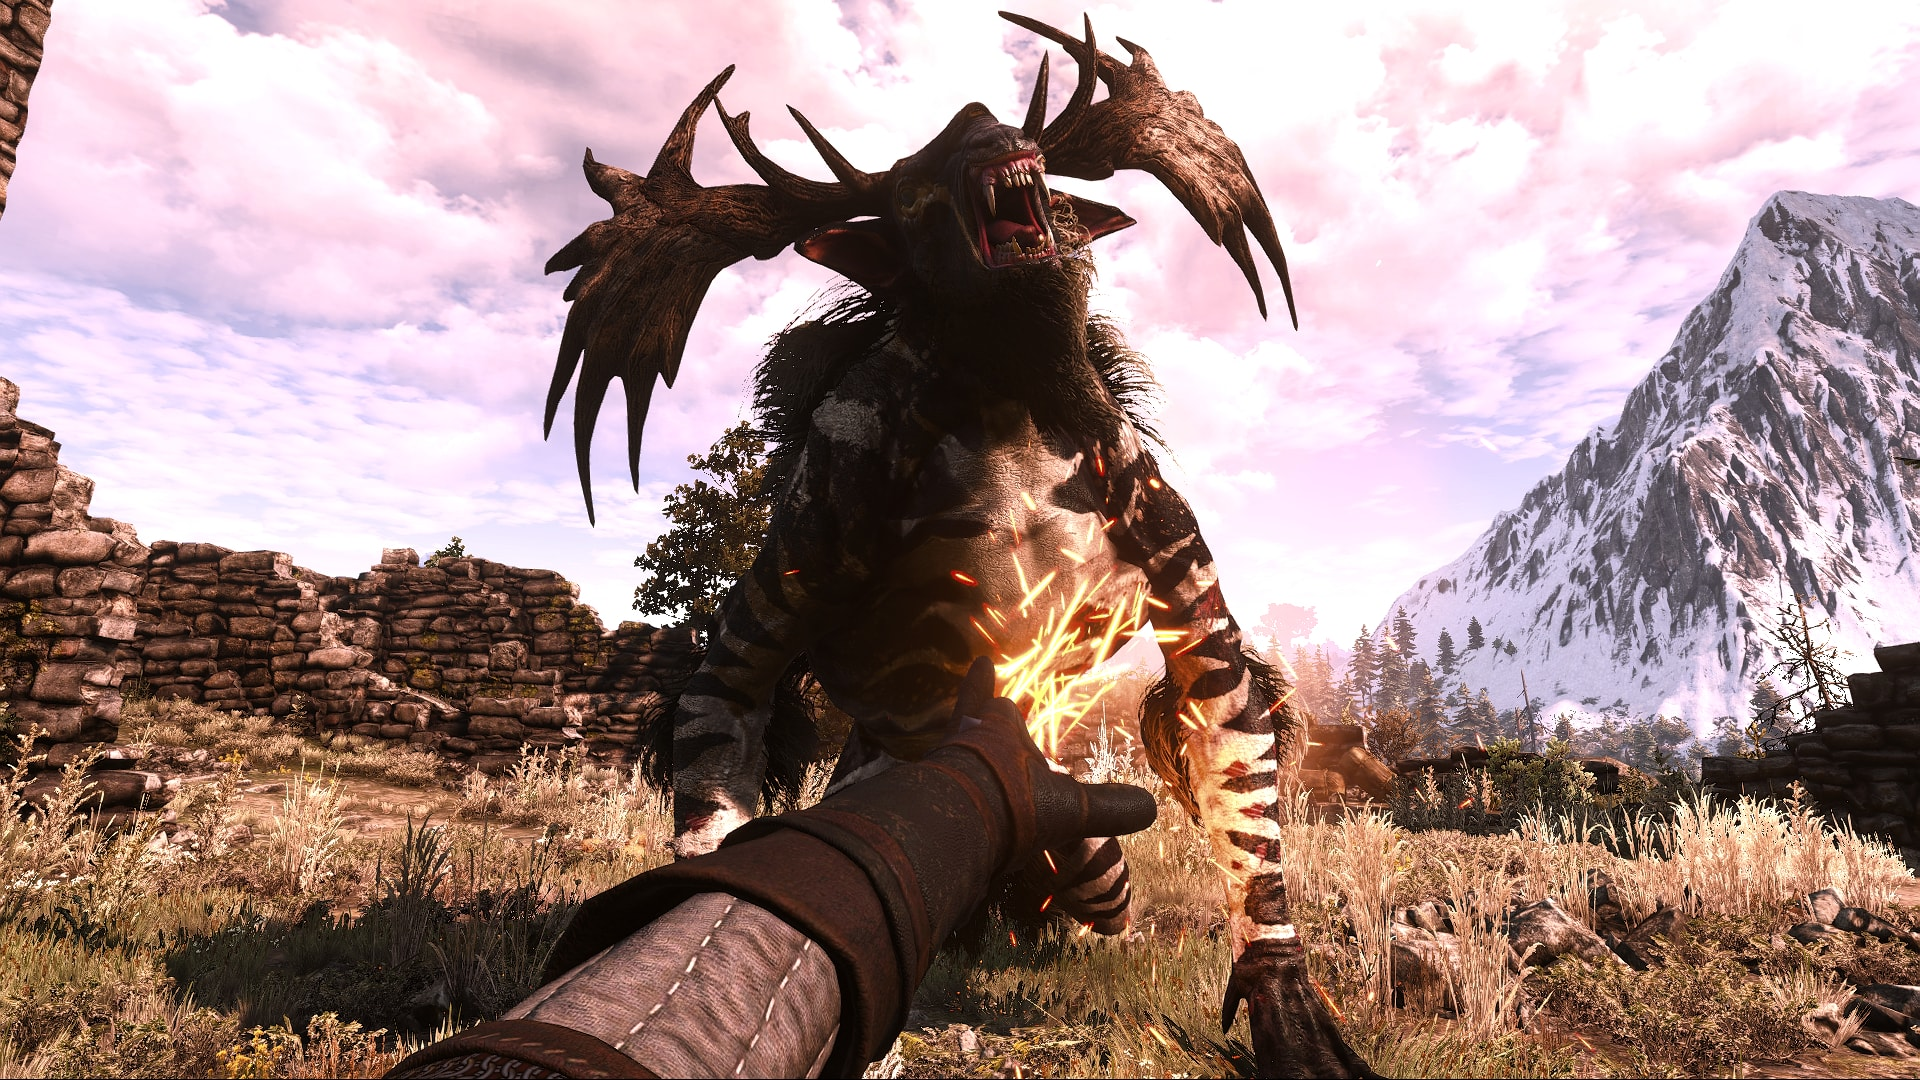 Fiend at The Witcher 3 Nexus - Mods and community